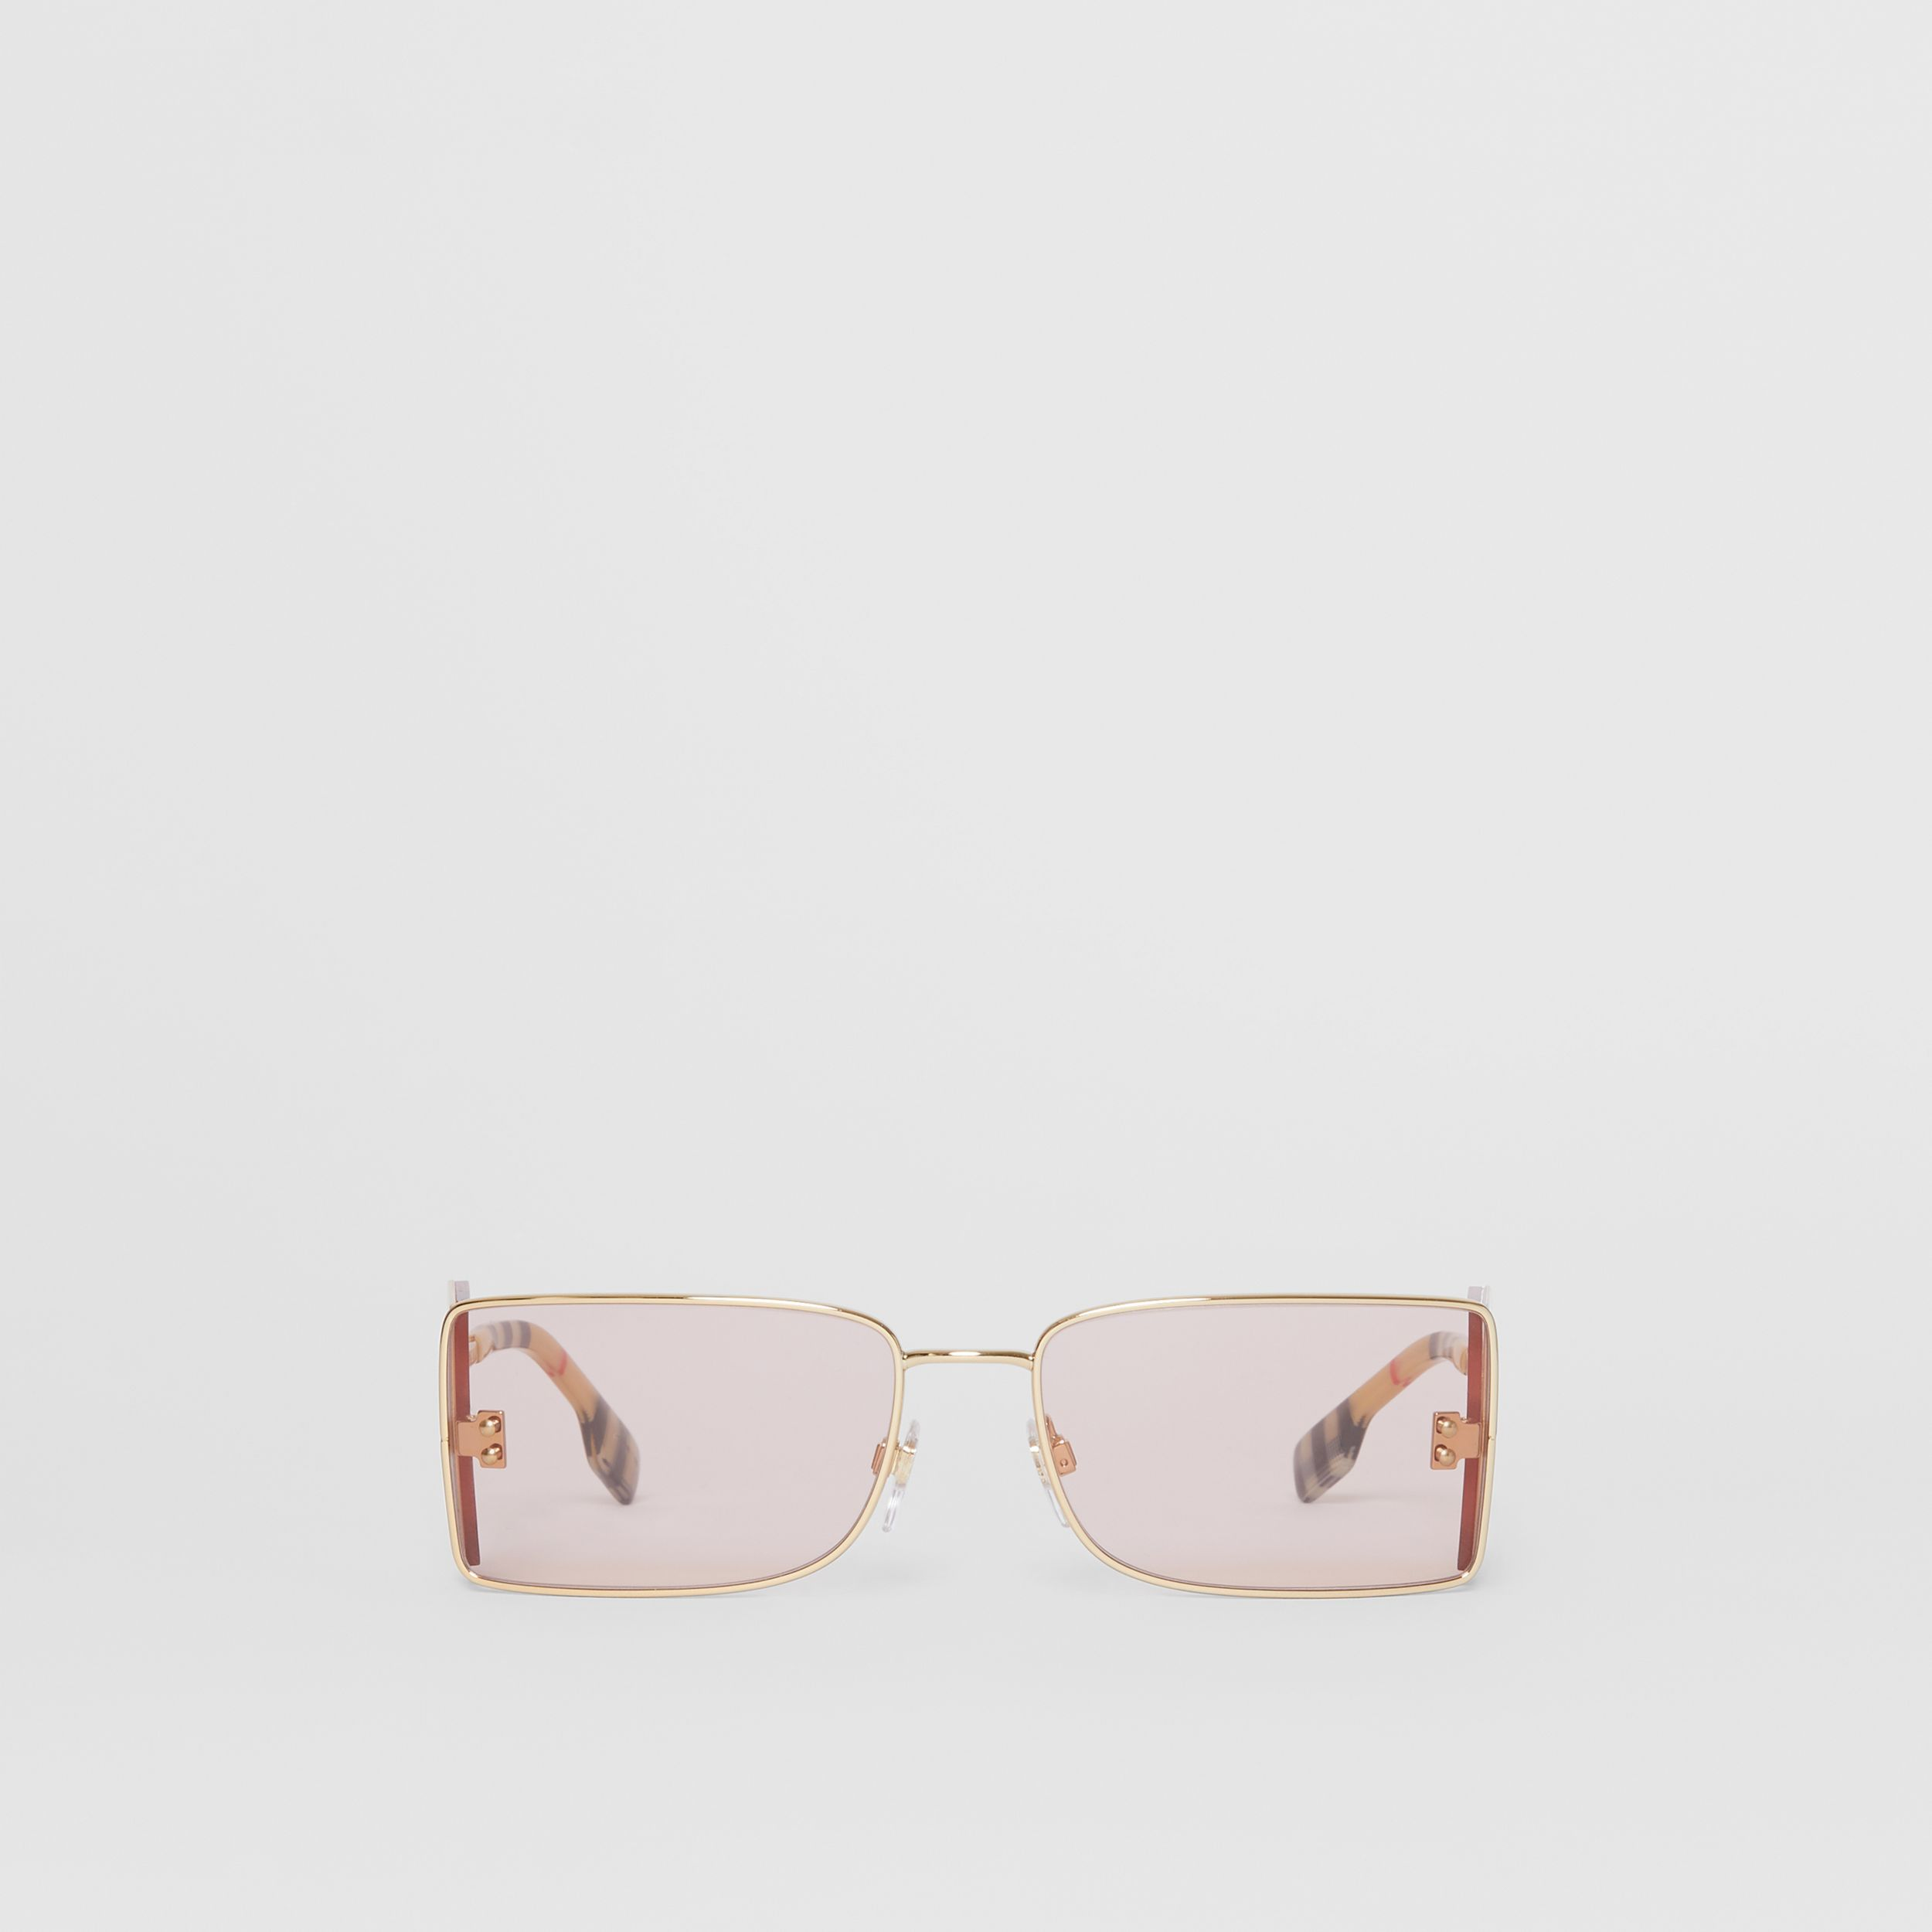 'B' Lens Detail Rectangular Frame Sunglasses in Gold | Burberry - 1